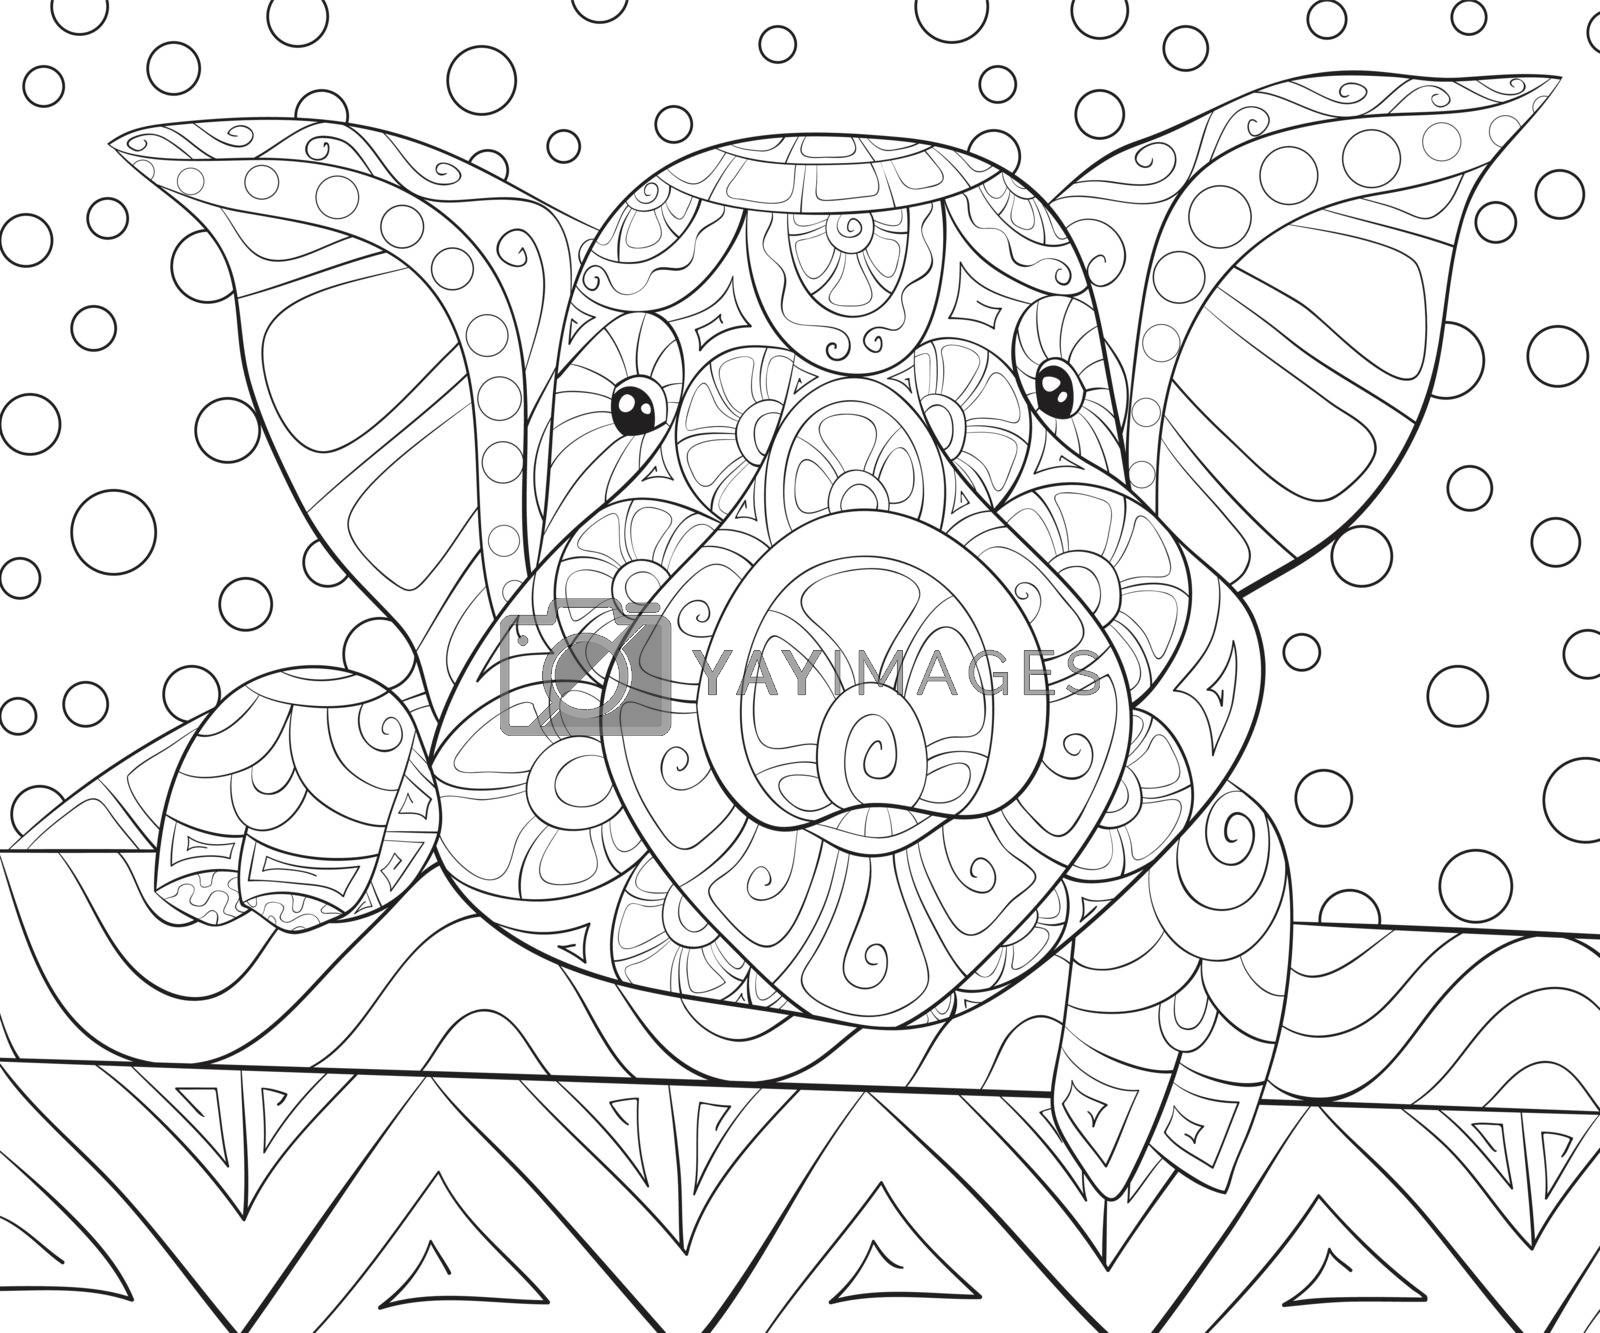 Adult coloring book,page a cute pig with ornaments image for rel by Nonuzza